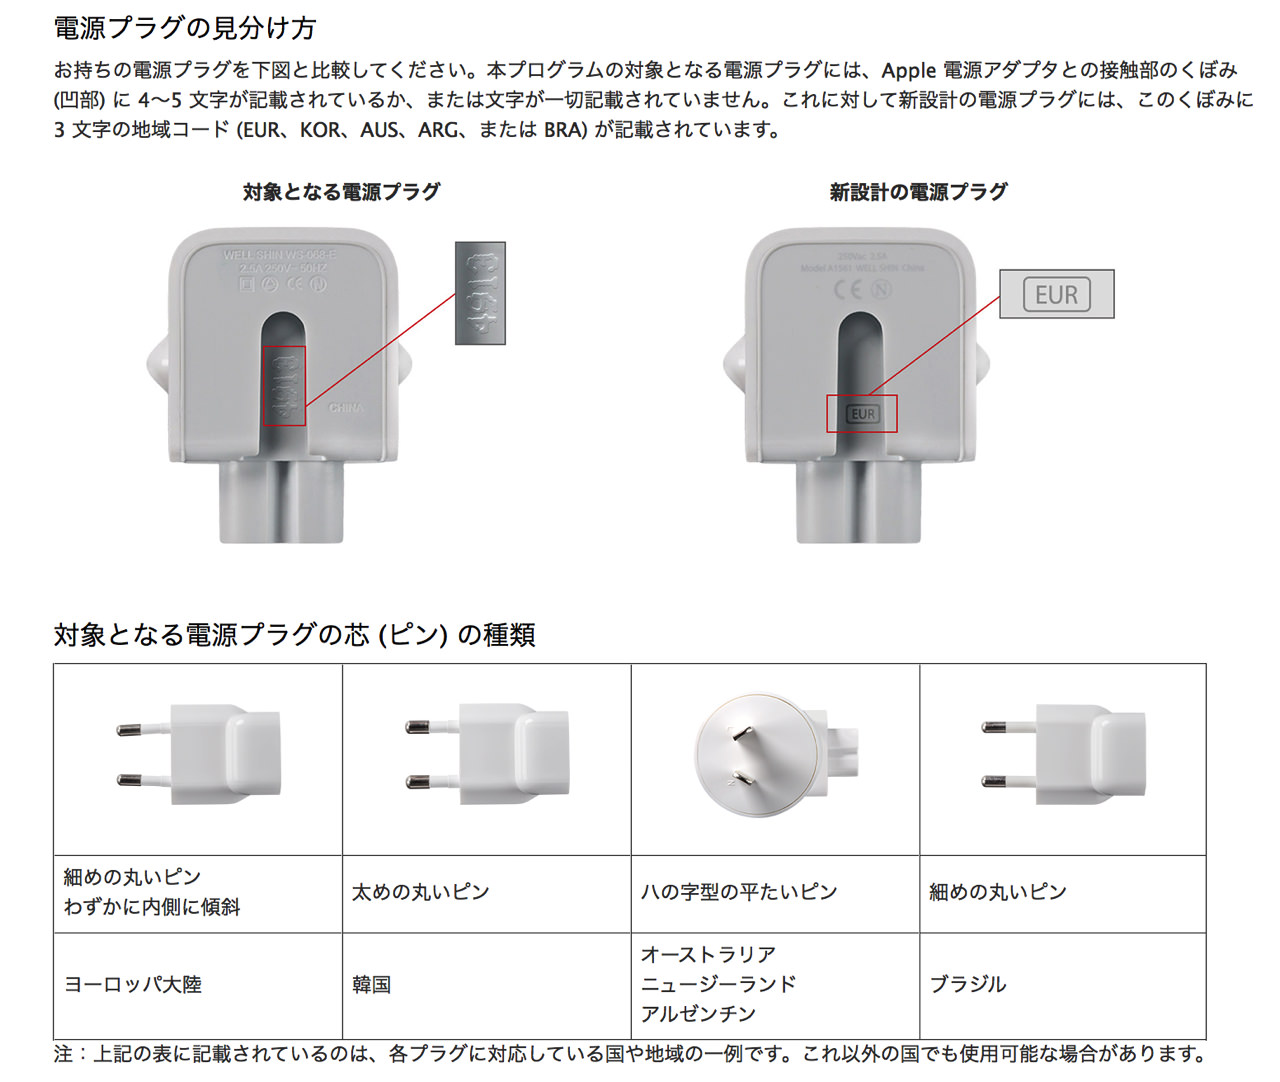 Apple ac power plug exchange program1